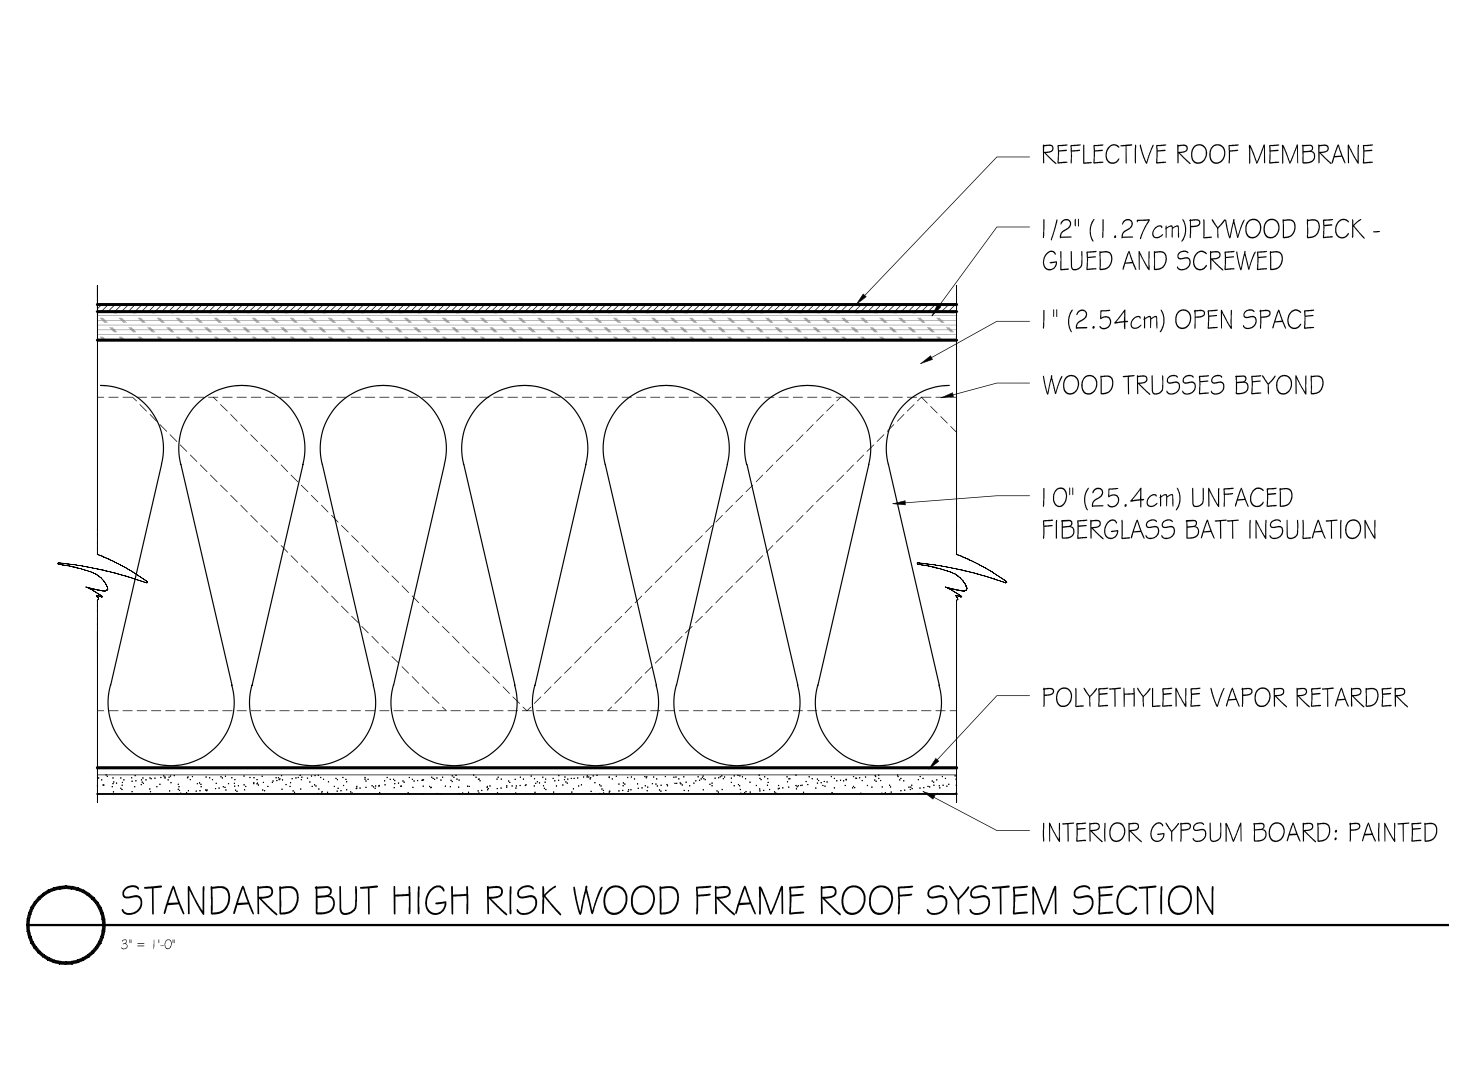 Figure 1: Reduced Attic Space Resulted In A Roof Section Comprised Of The  Following Components